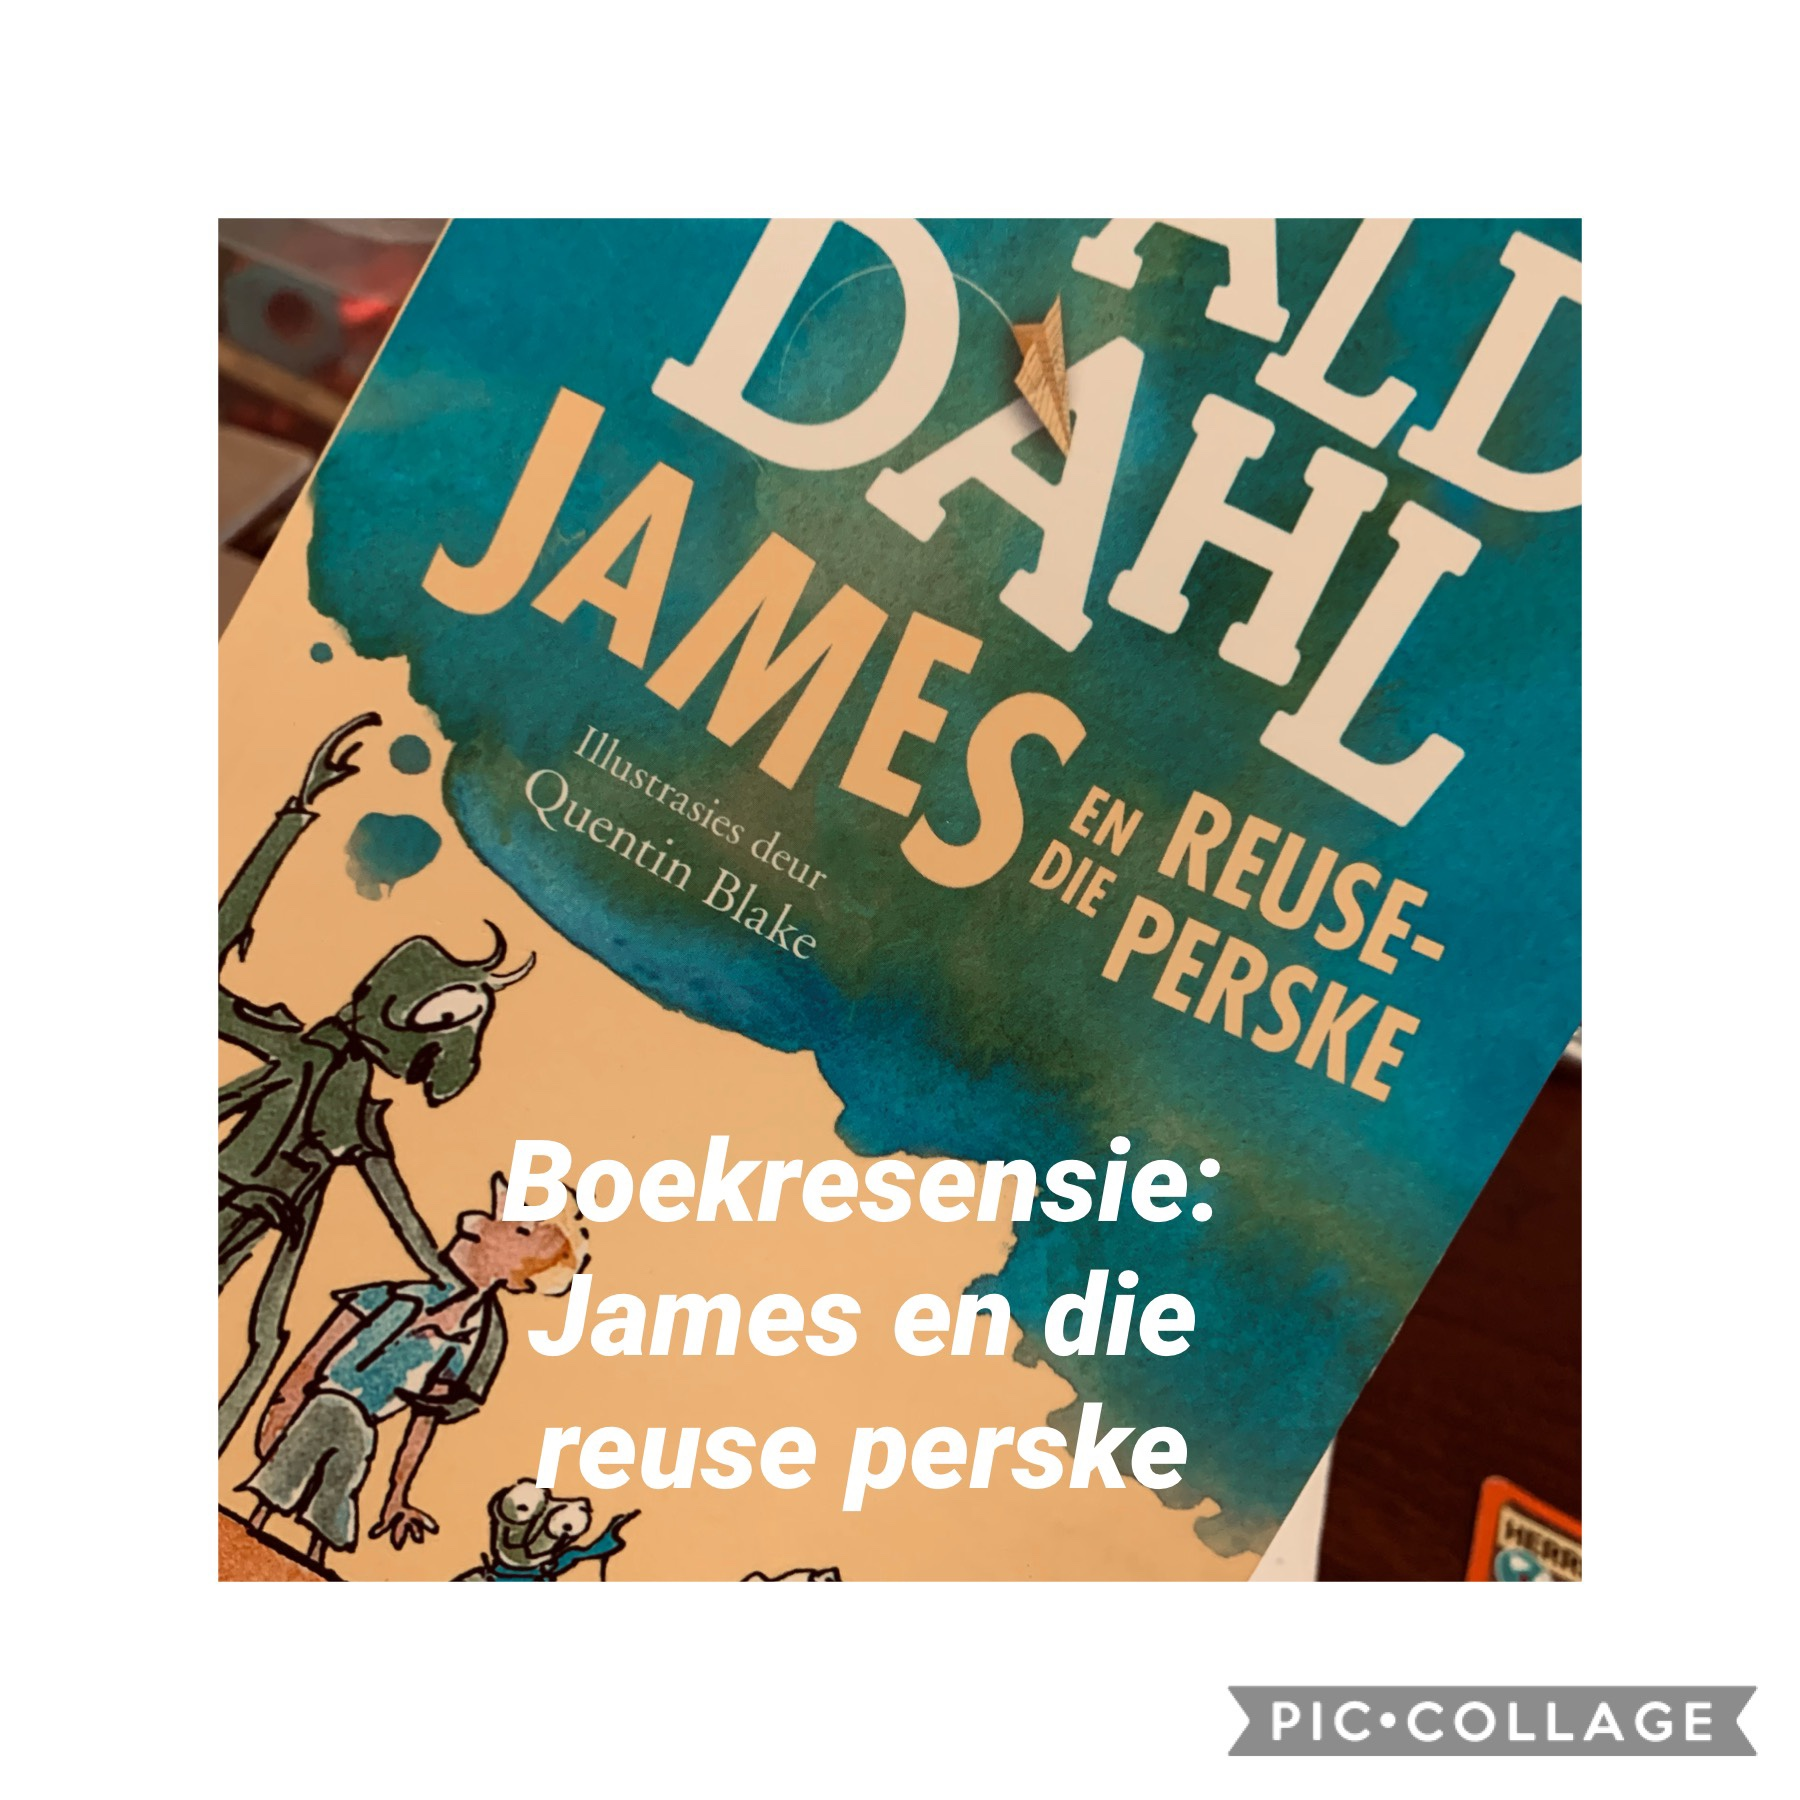 Boekresensie: James en die reuse perske